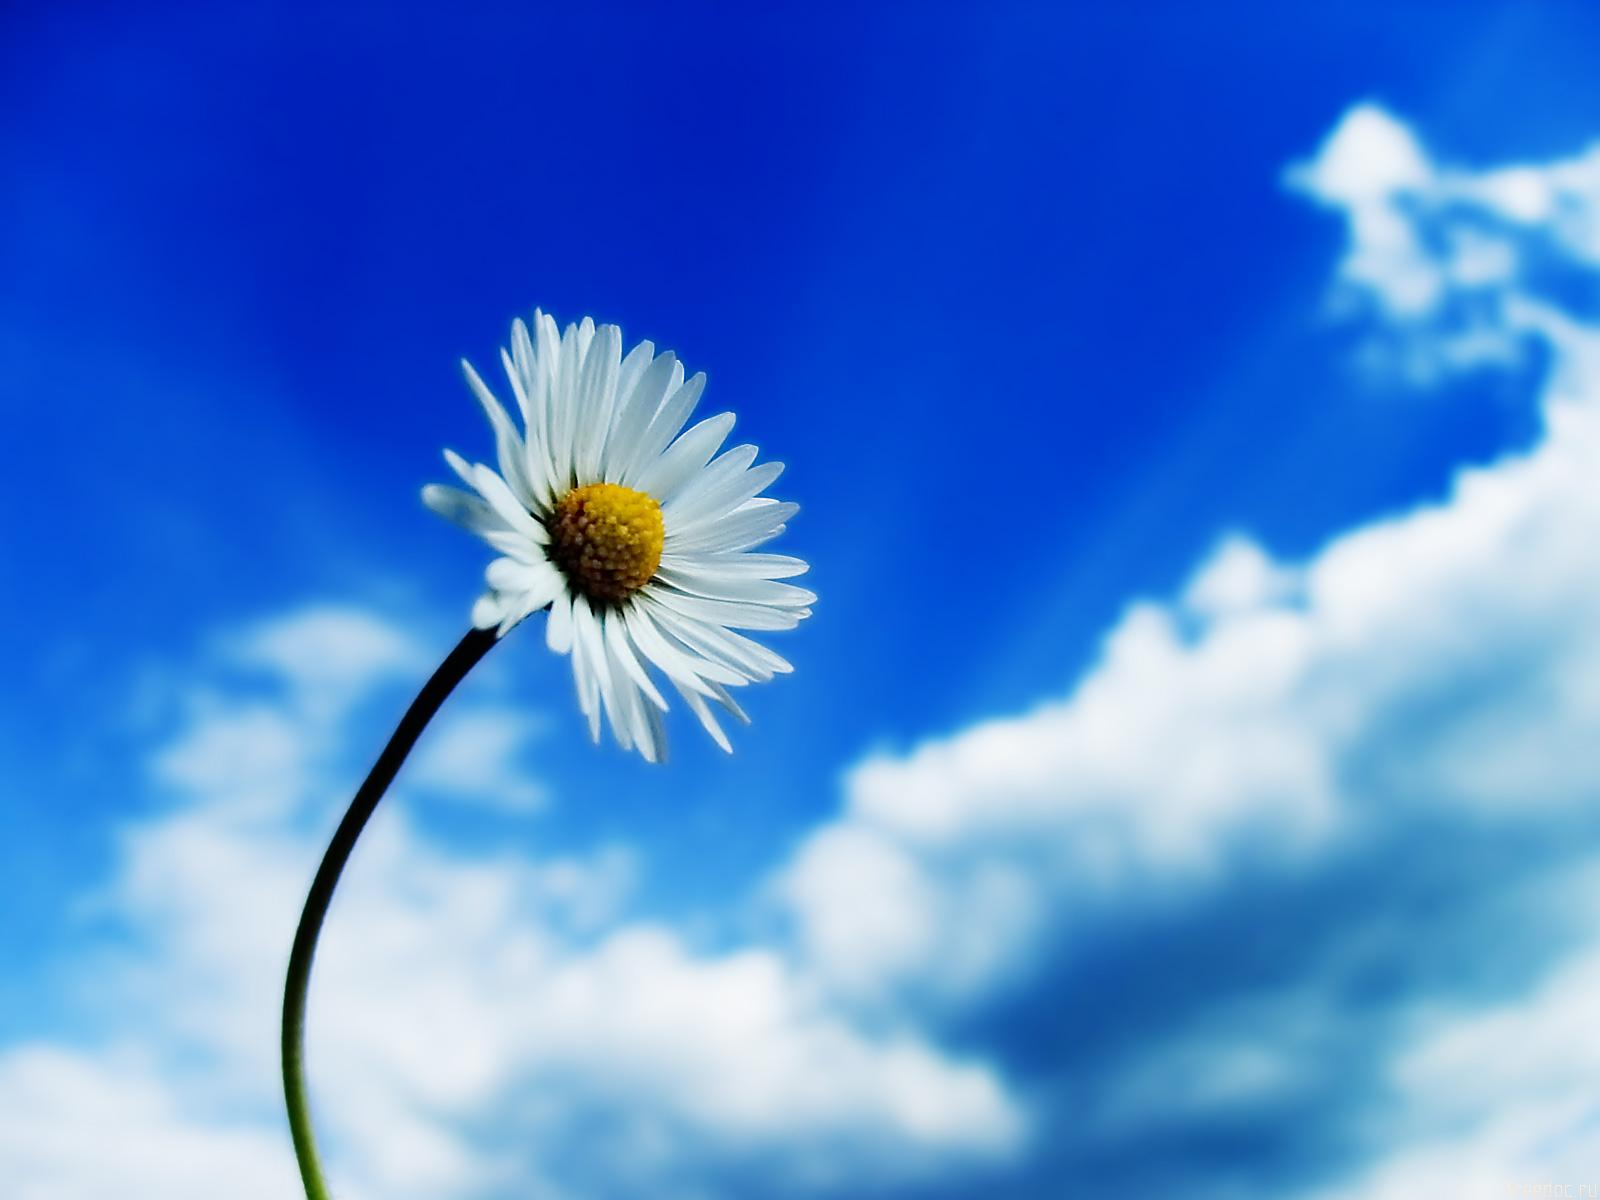 beautiful sky single white daisy flower normal cool wallpaper photos